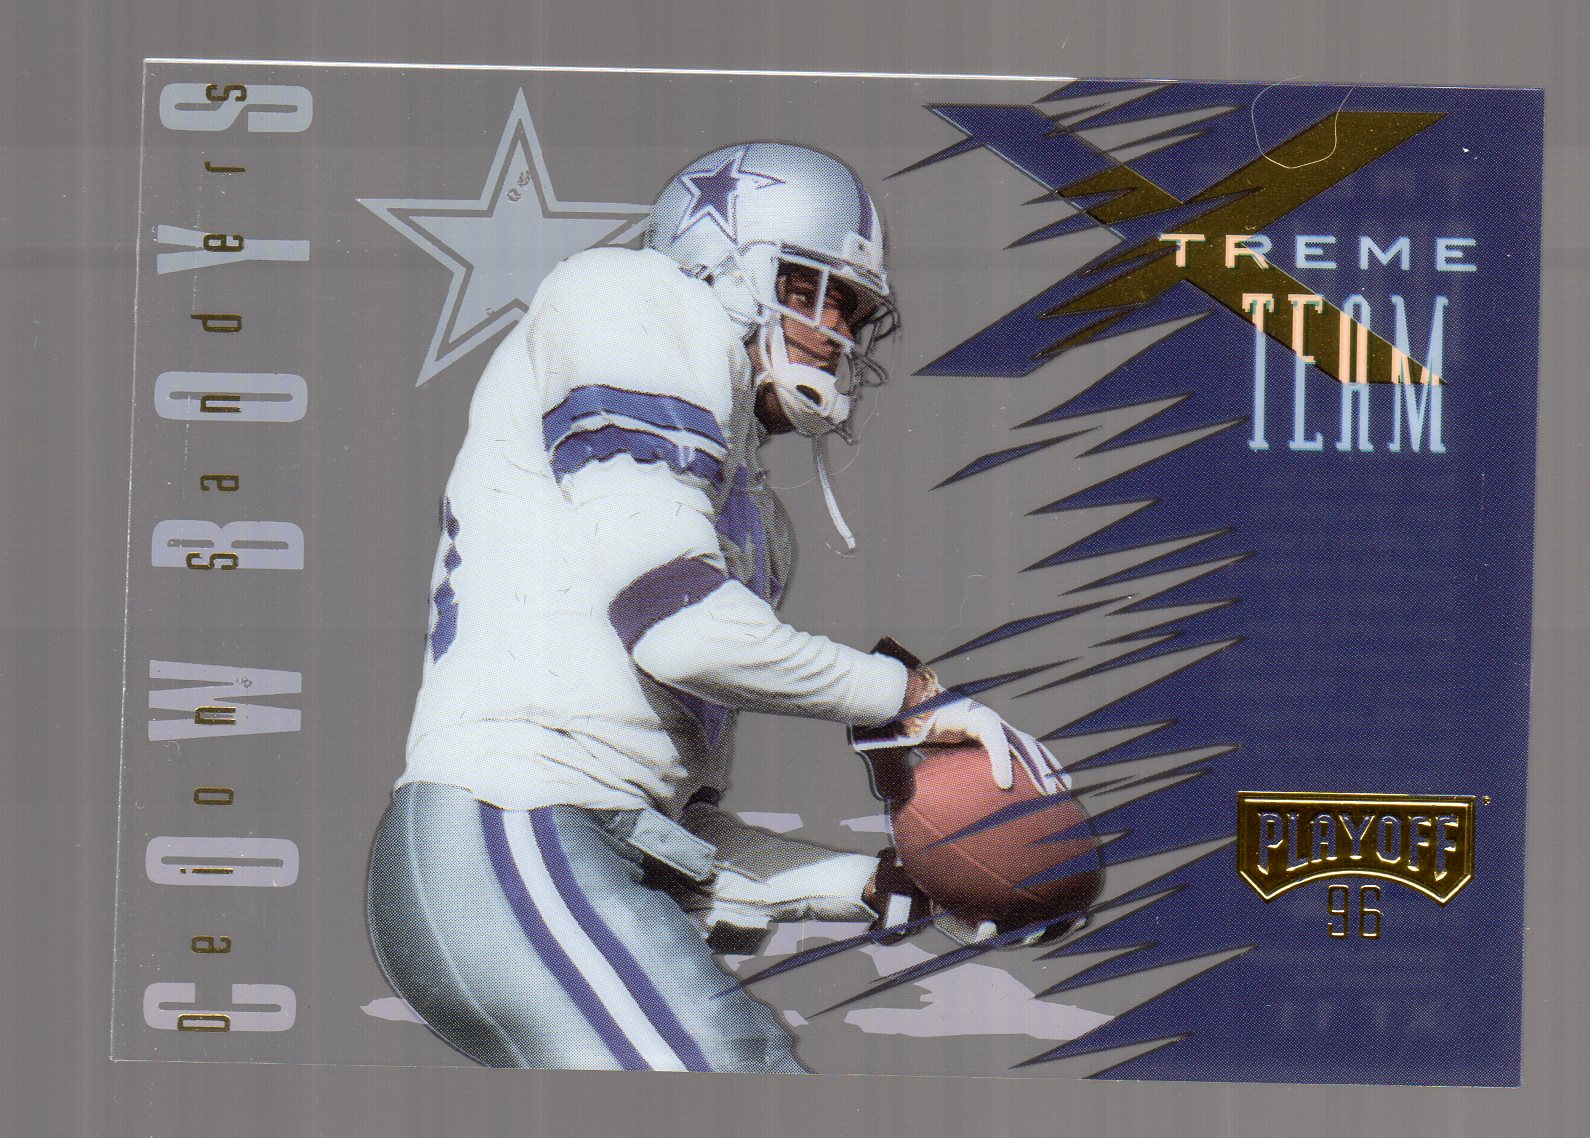 1996 Absolute Xtreme Team #11 Deion Sanders